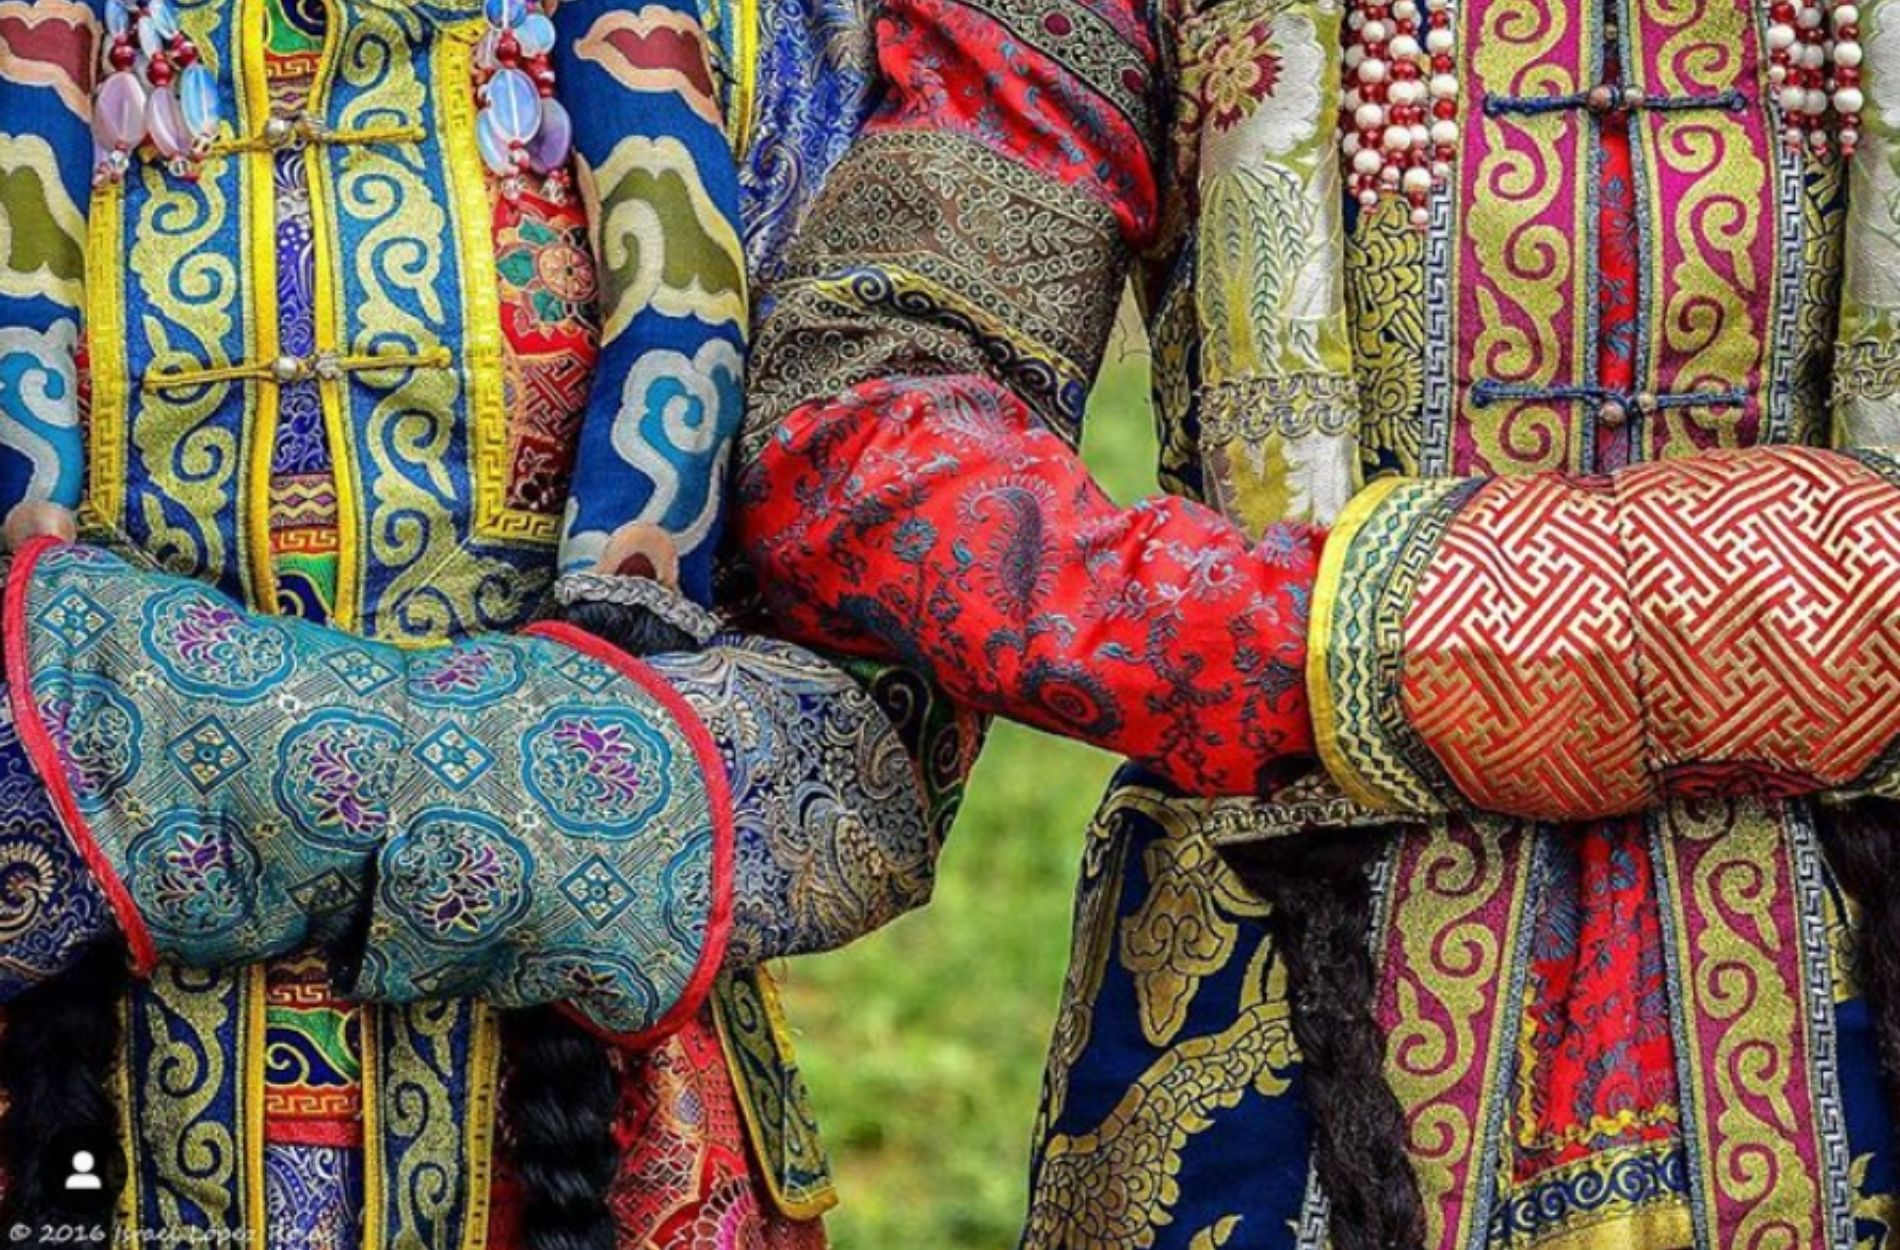 details of mongolian traditional textiles used in liebre style collection